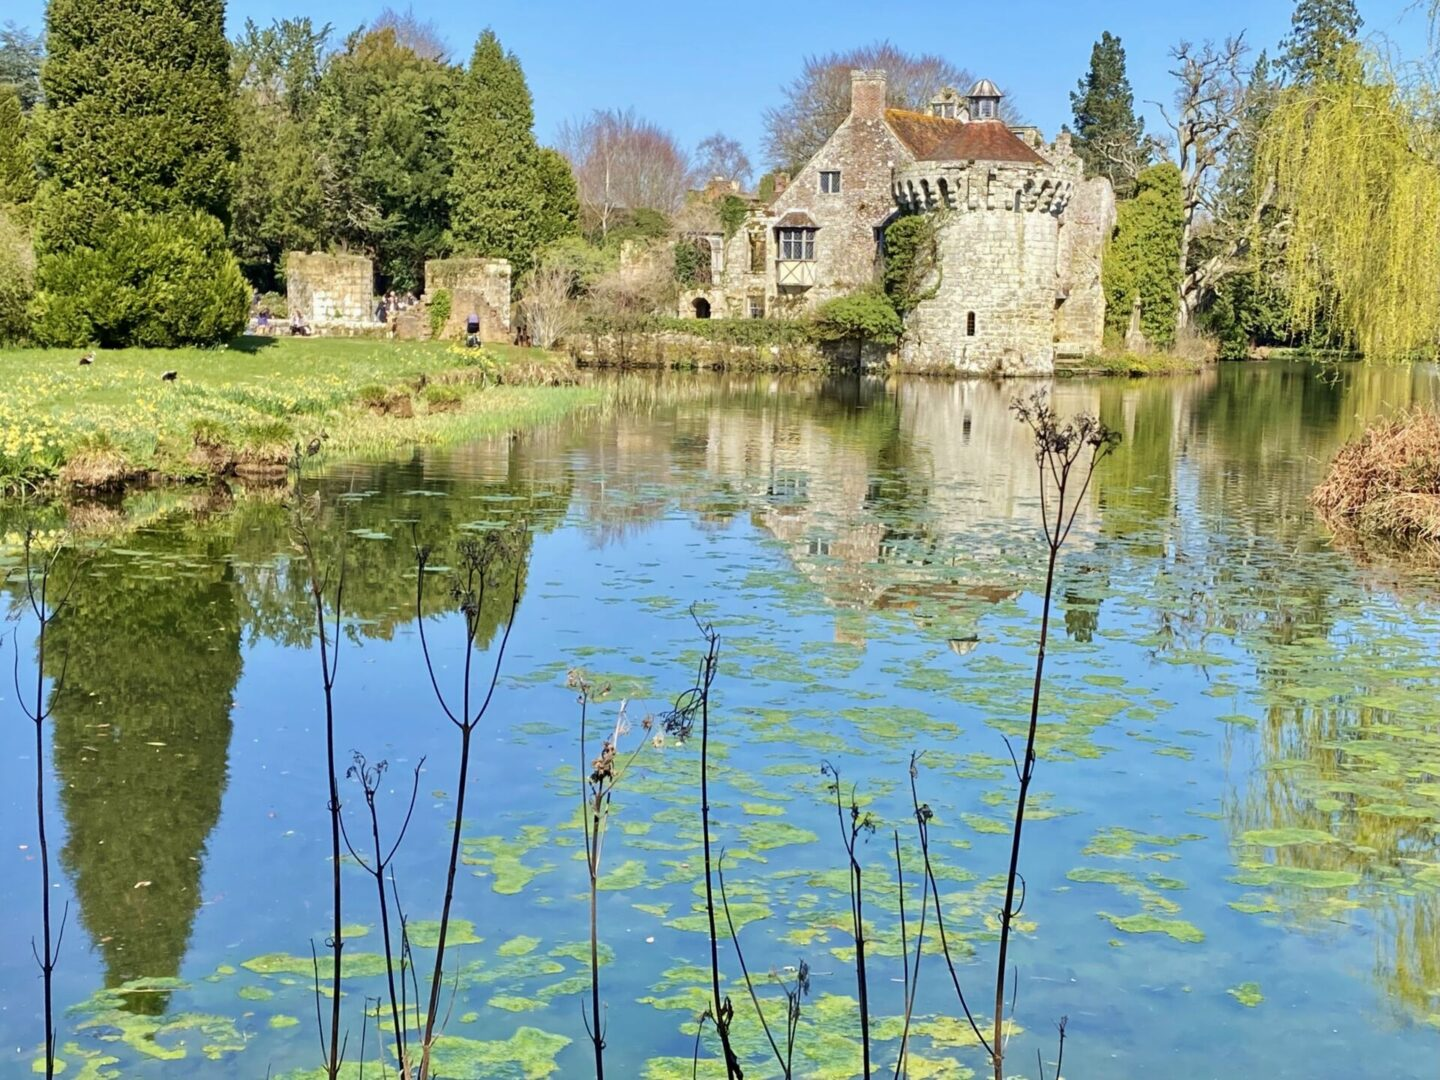 Scotney Castle – and a glimpse of herons